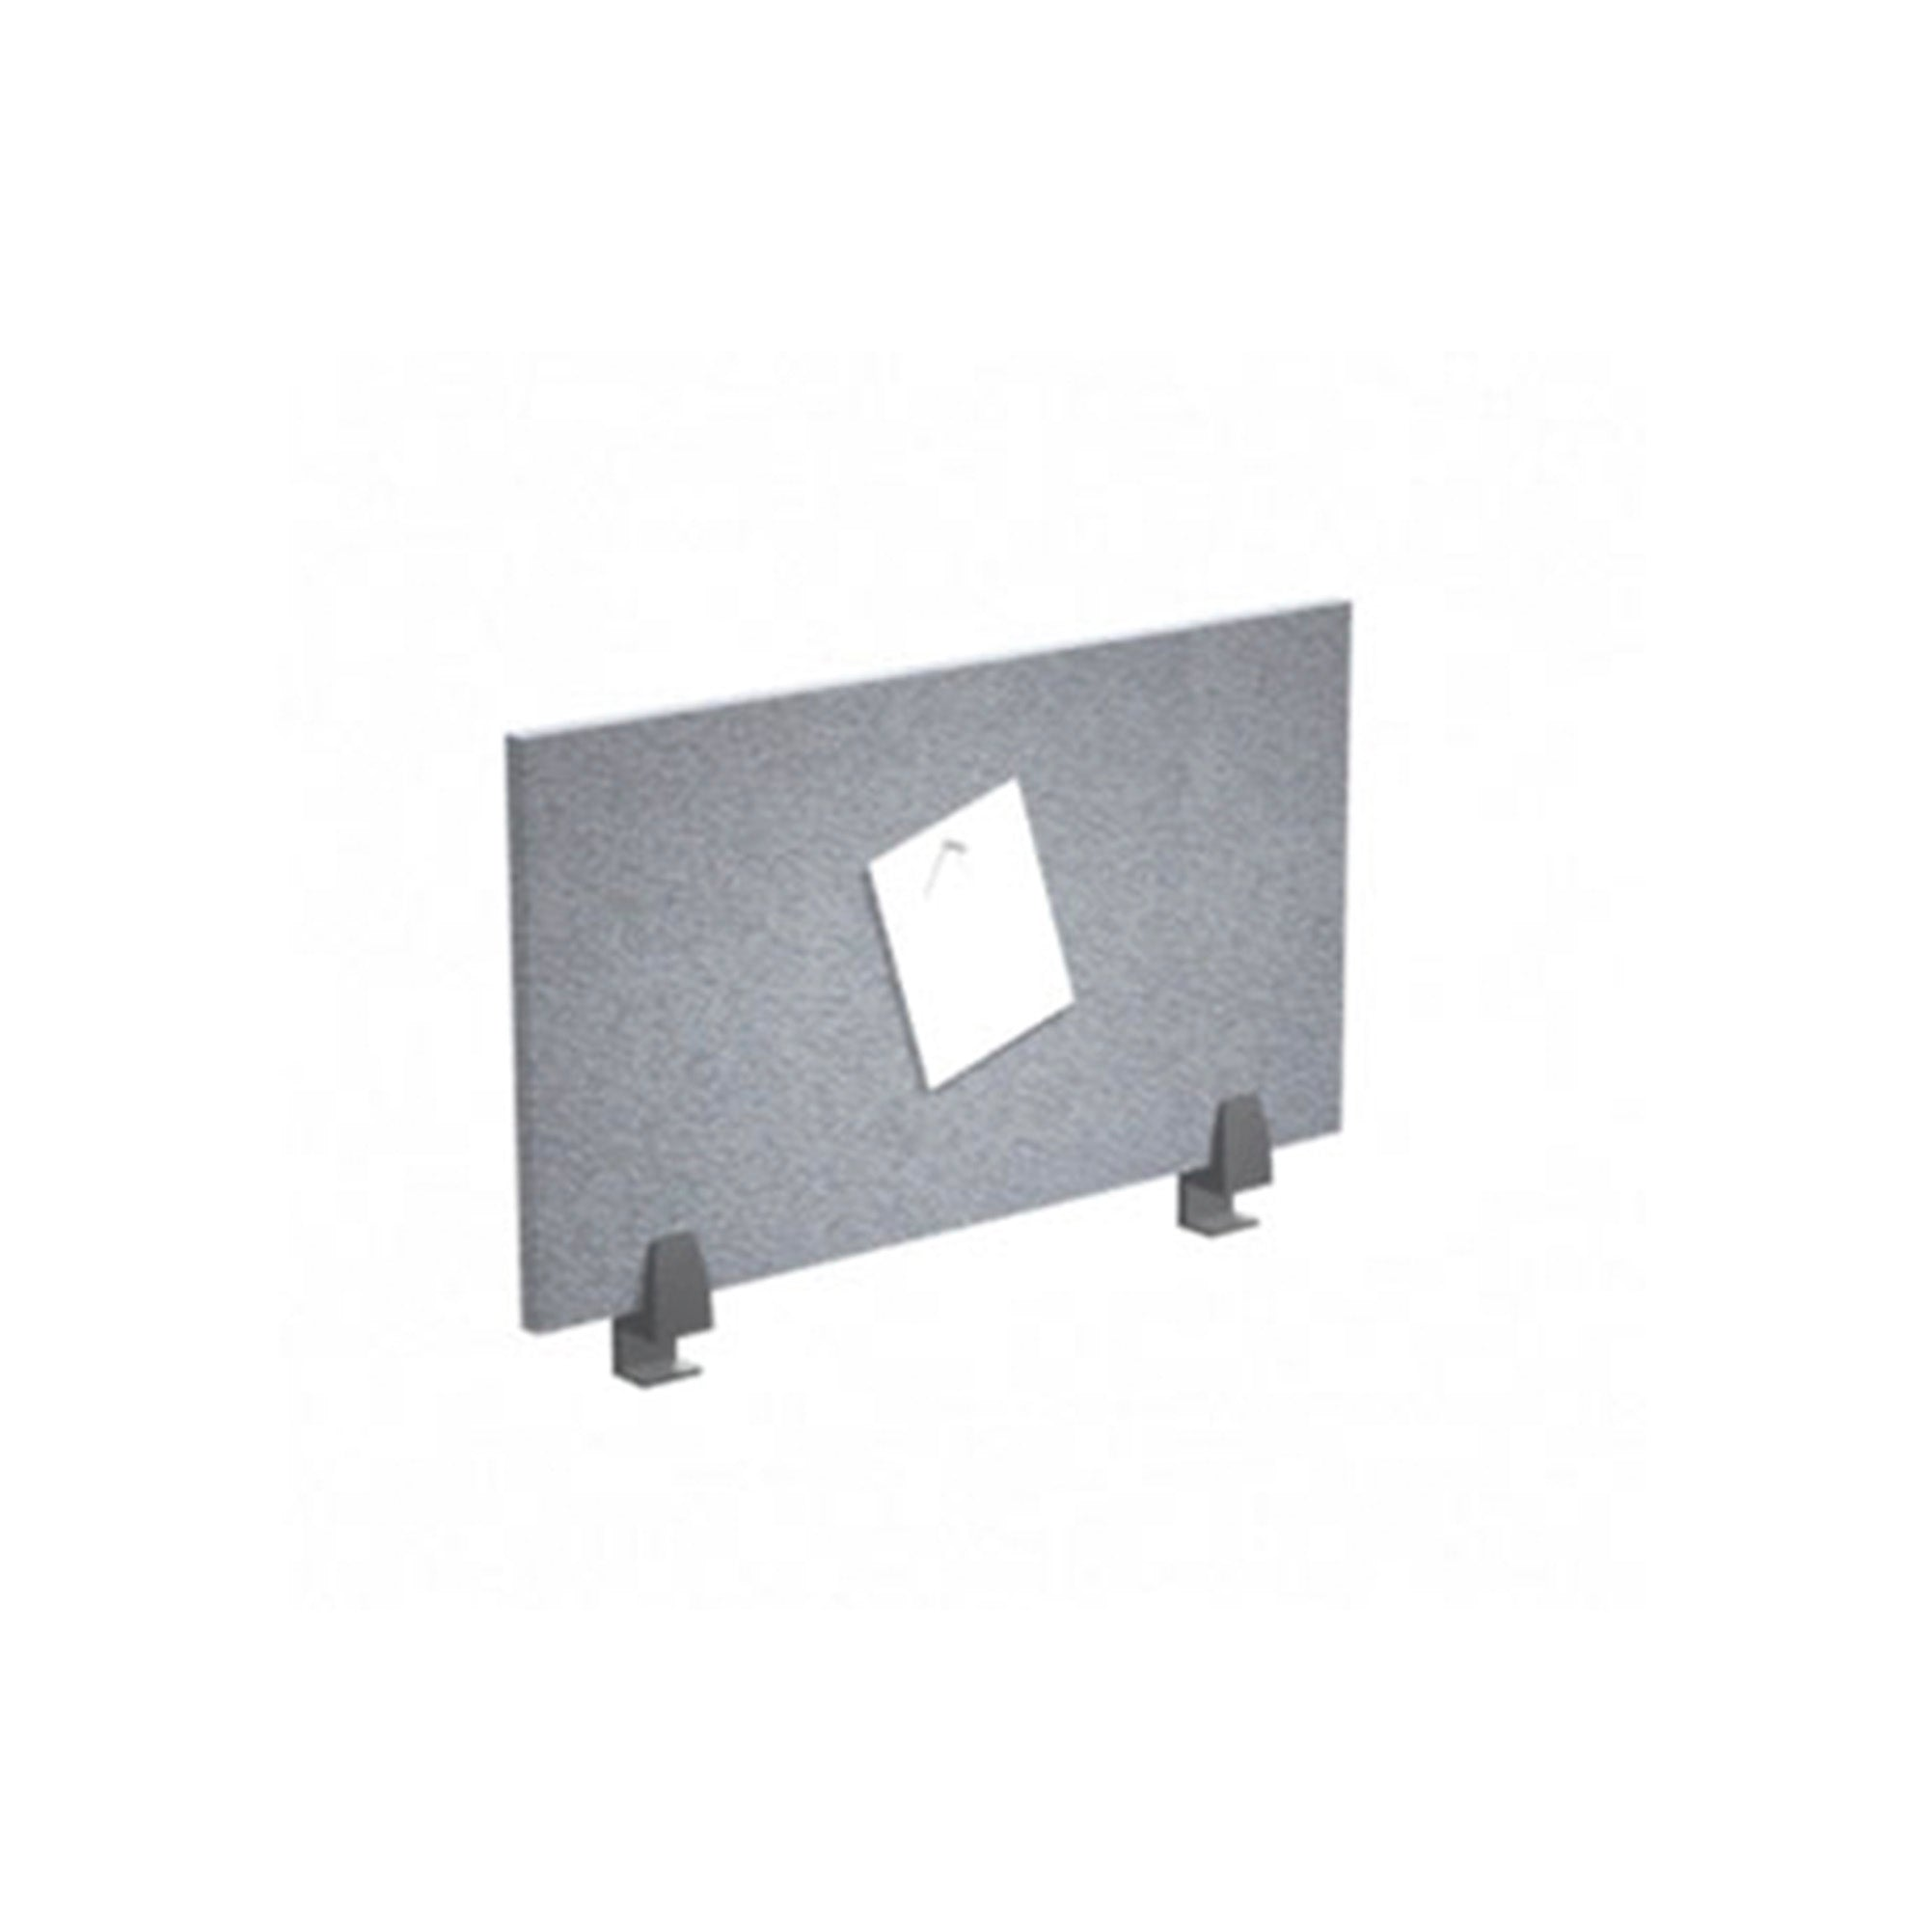 Tackboard Desk Mounted Privacy Panel